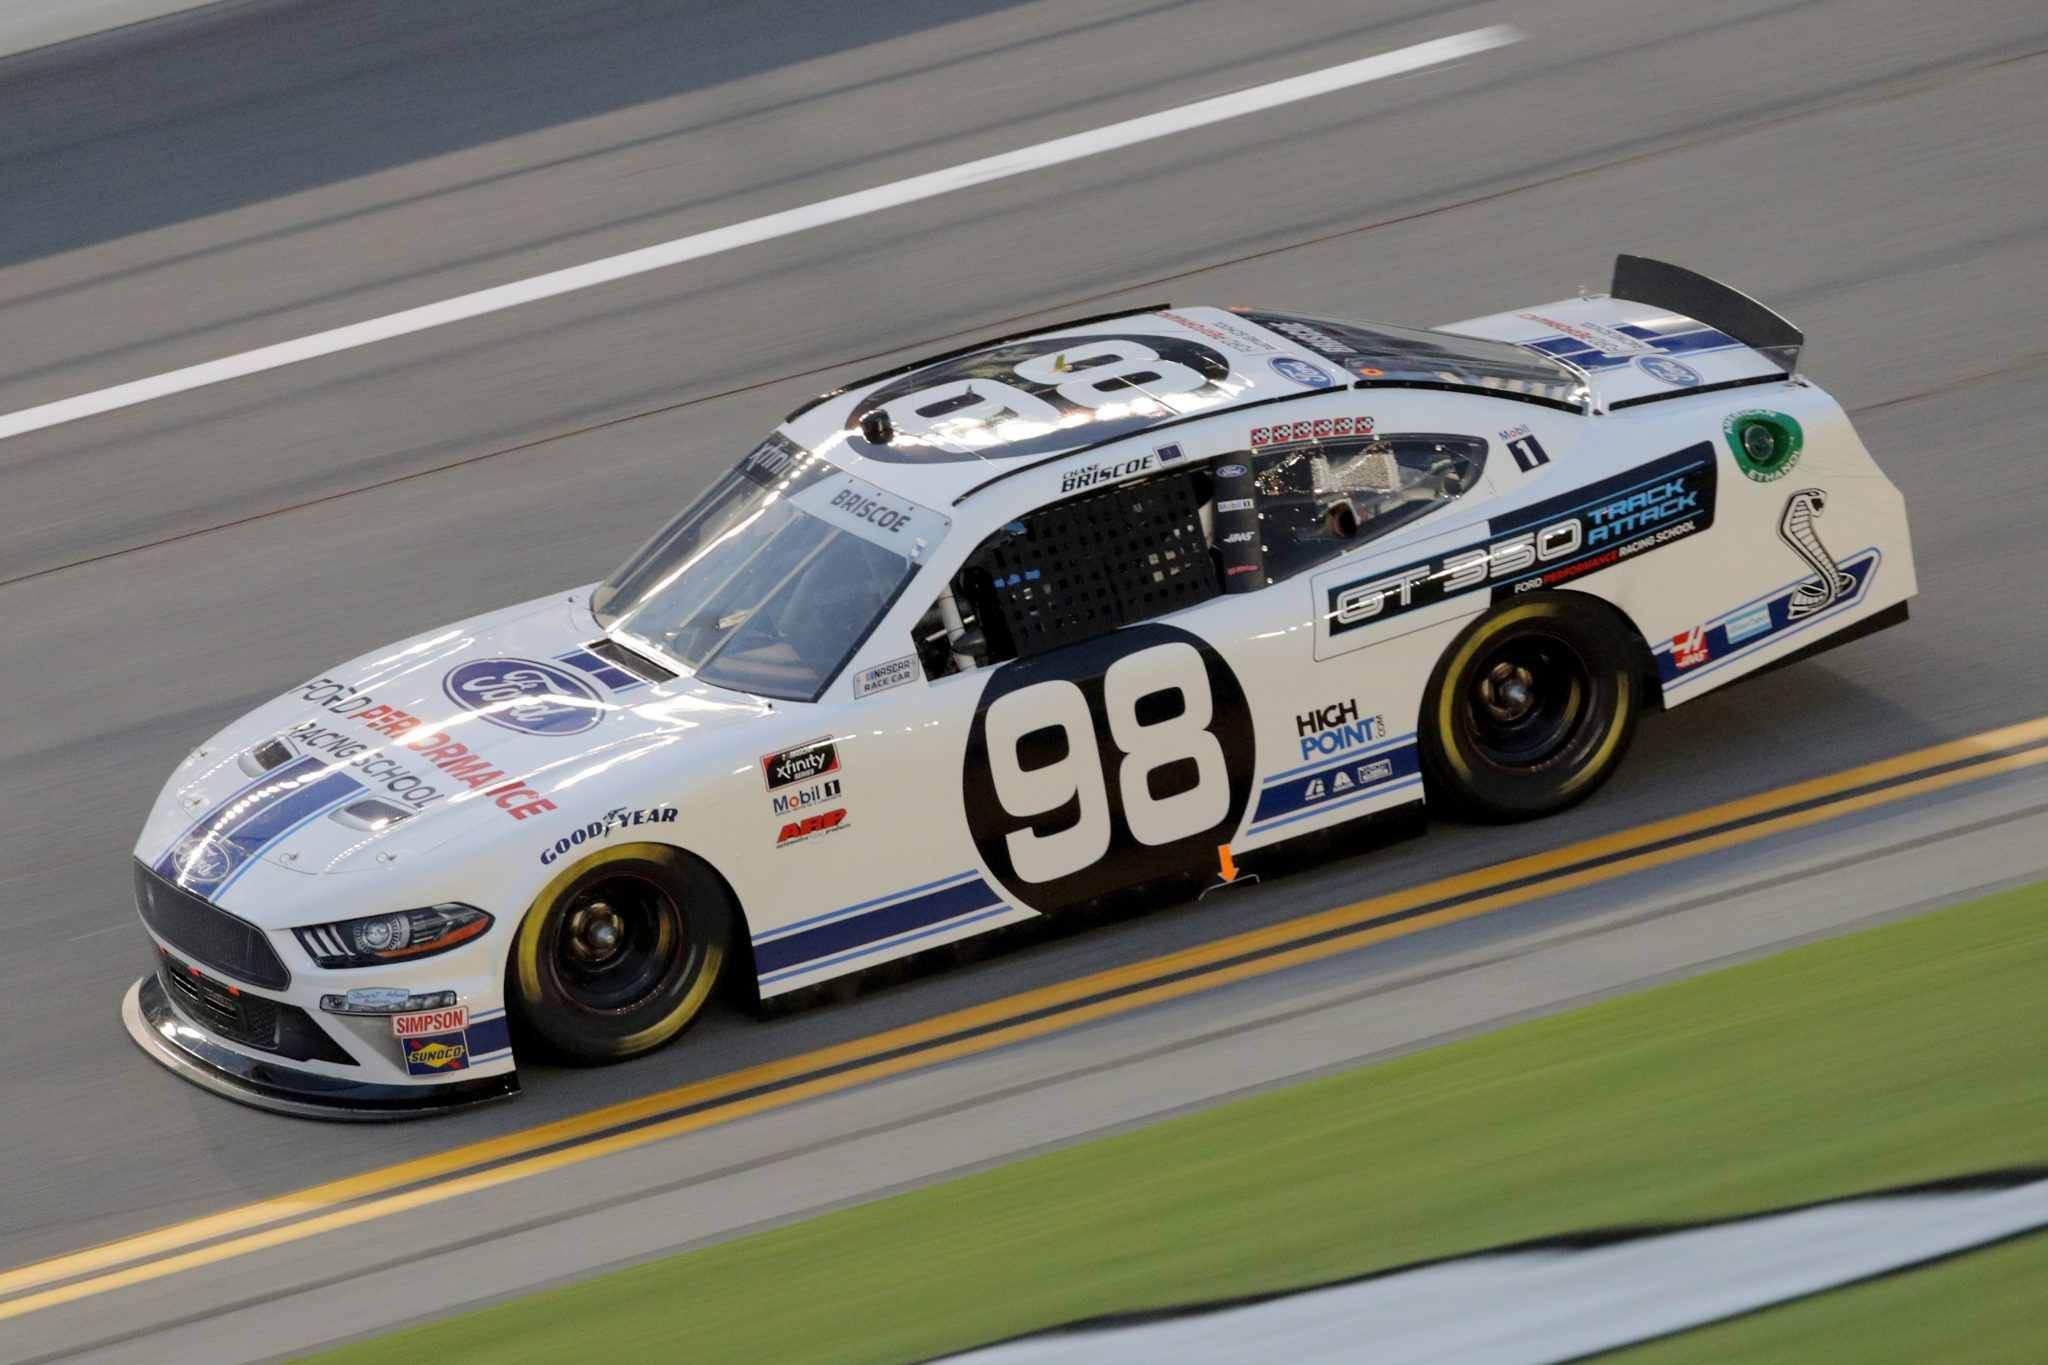 DAYTONA BEACH, FLORIDA - AUGUST 28: Chase Briscoe, driver of the #98 Ford Performance Racing School Ford, drives during the NASCAR Xfinity Series Wawa 250 Powered by Coca-Cola at Daytona International Speedway on August 28, 2020 in Daytona Beach, Florida. (Photo by Chris Graythen/Getty Images) | Getty Images